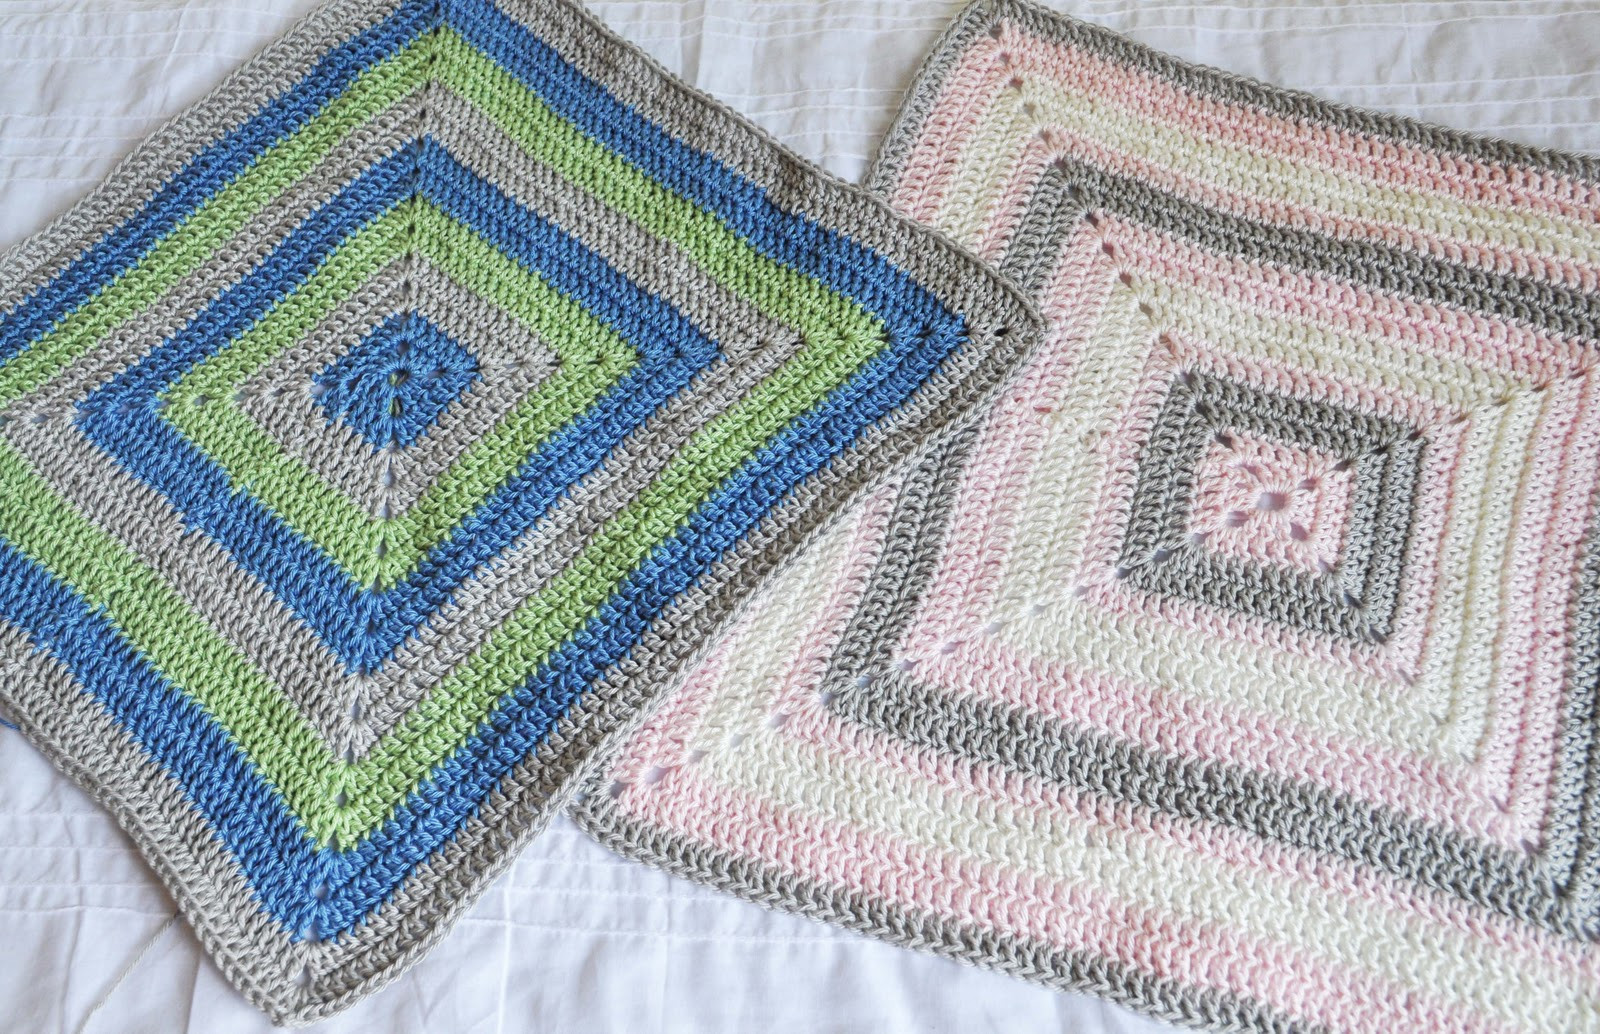 Unique the Handmade Dress Filled In Granny Square Baby Blanket Granny Square Baby Blanket Of Amazing 41 Pictures Granny Square Baby Blanket